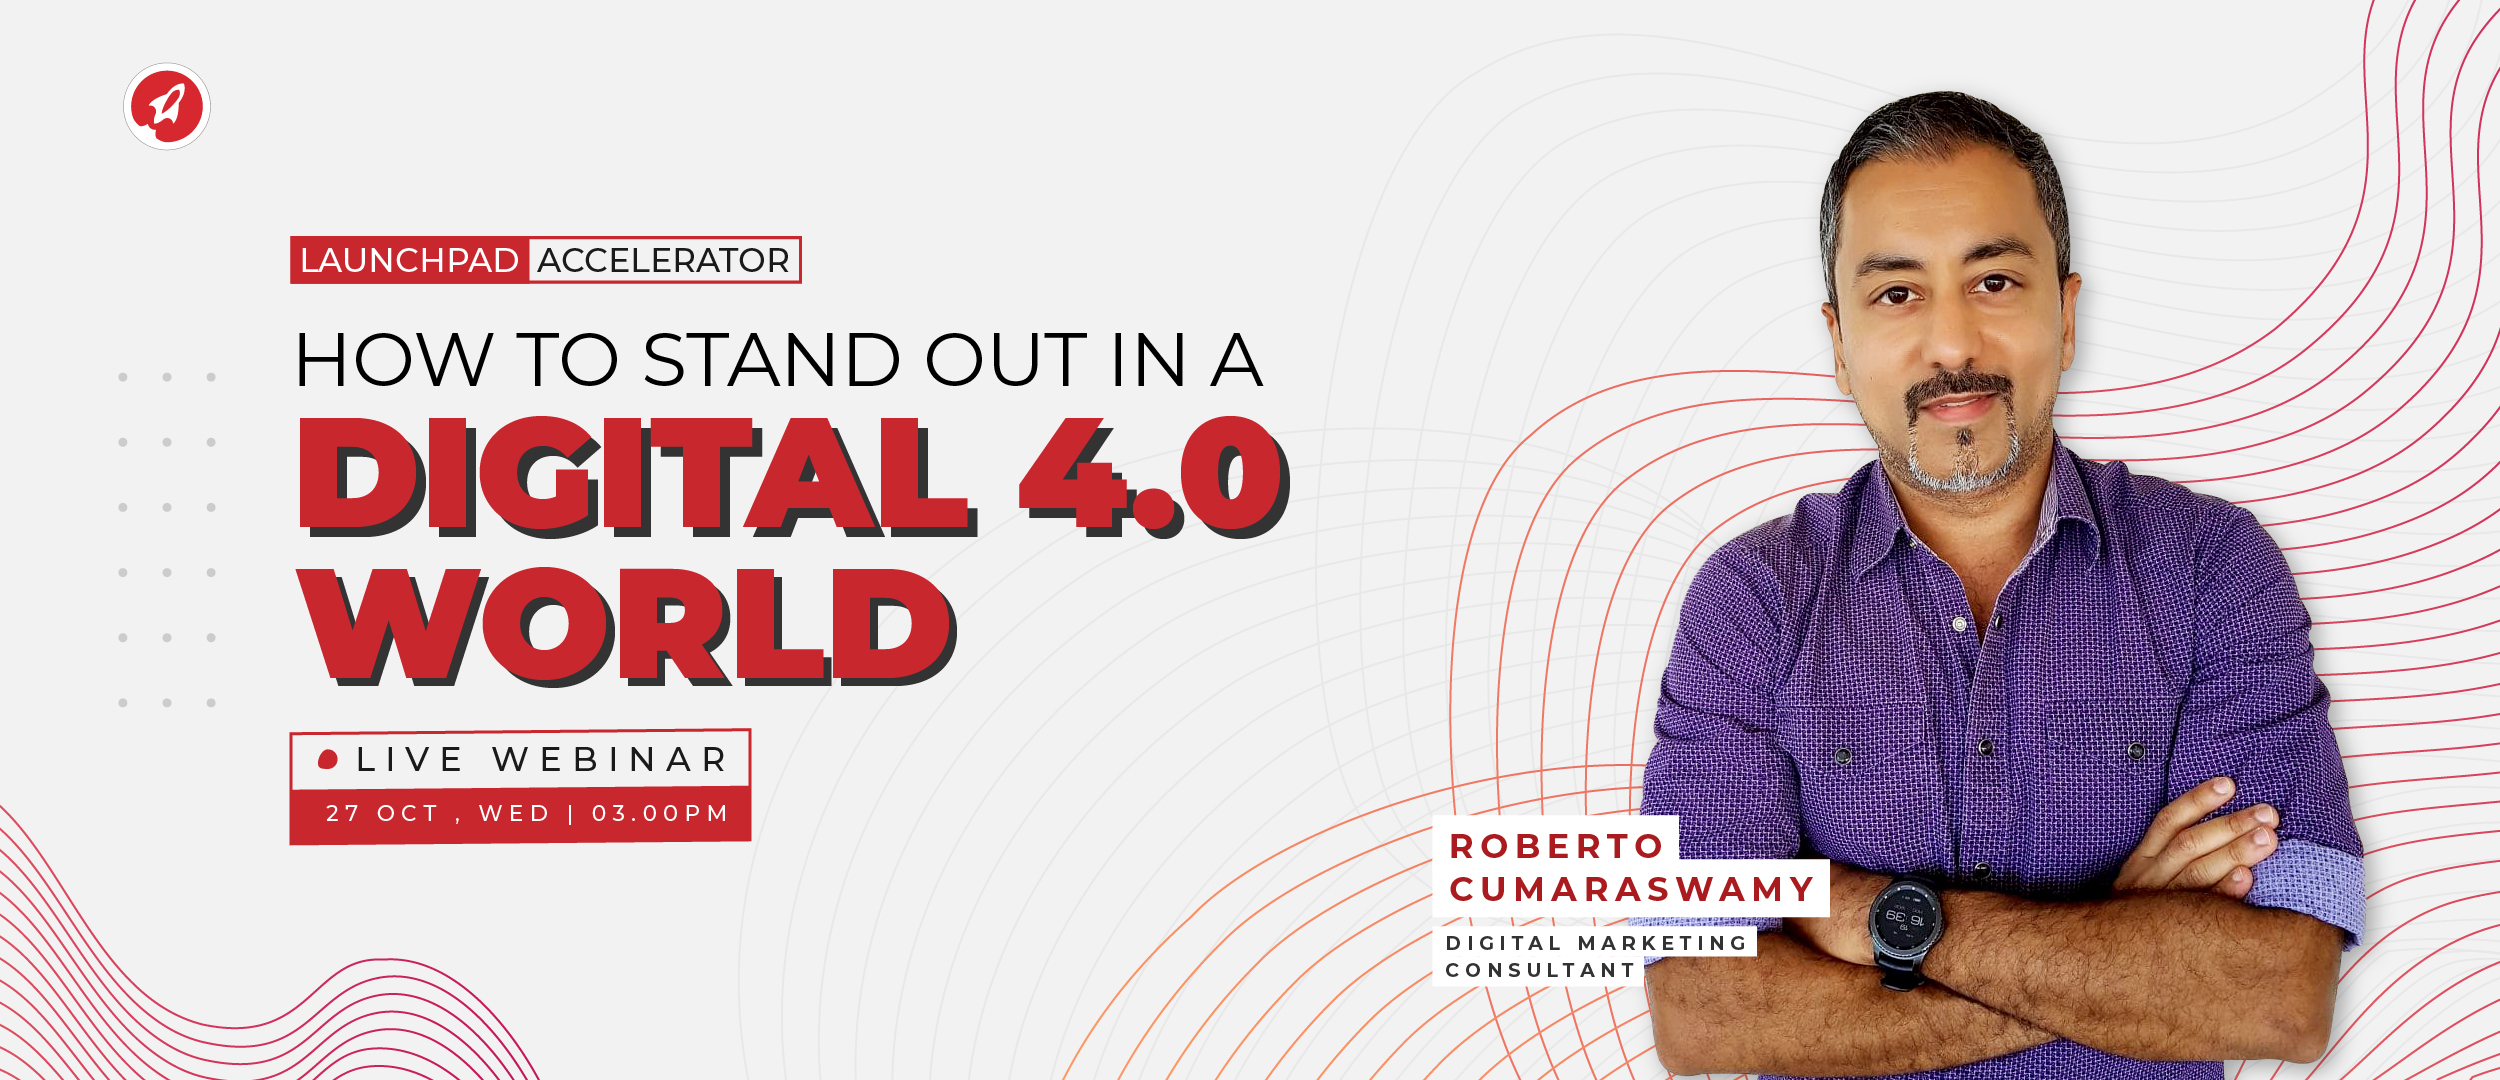 [LAS] How to Stand Out in a Digital 4.0 World-SM&Landing-03